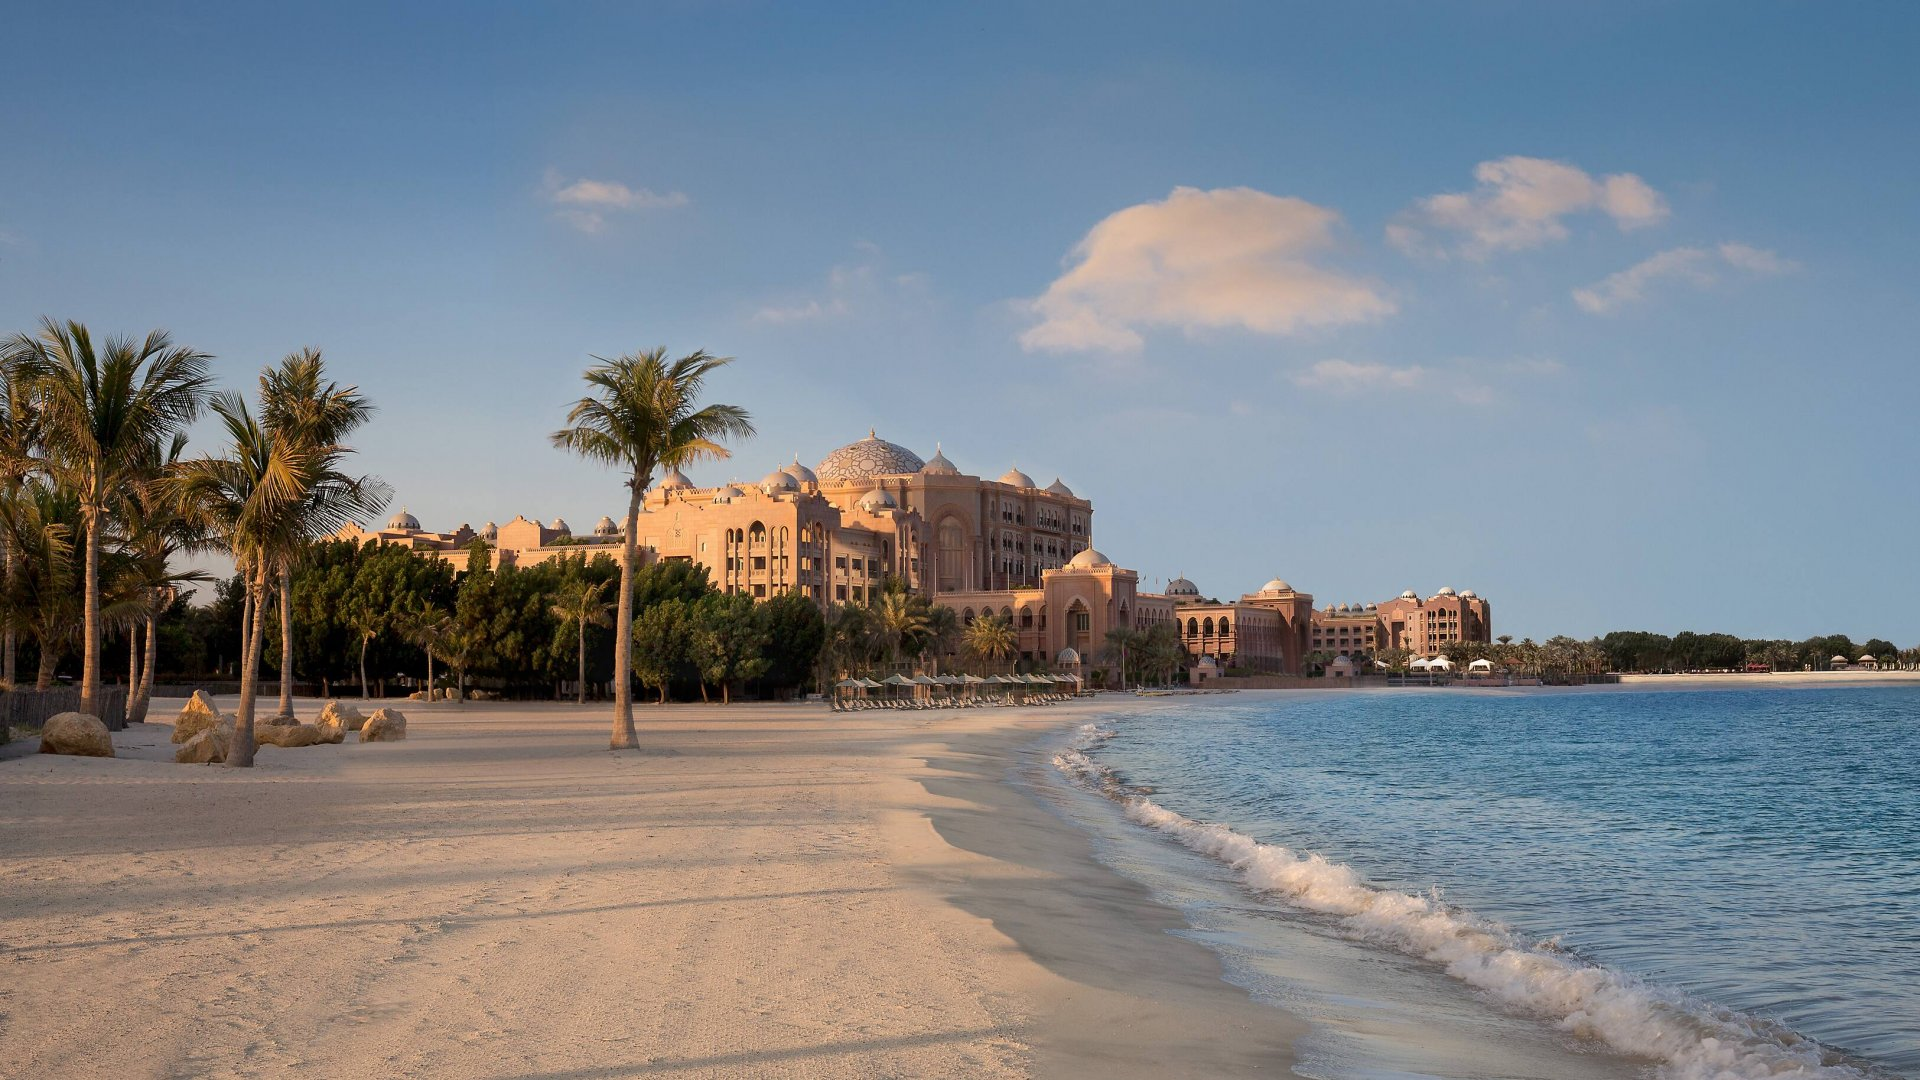 Emirates Palace Beach in Abu Dhabi